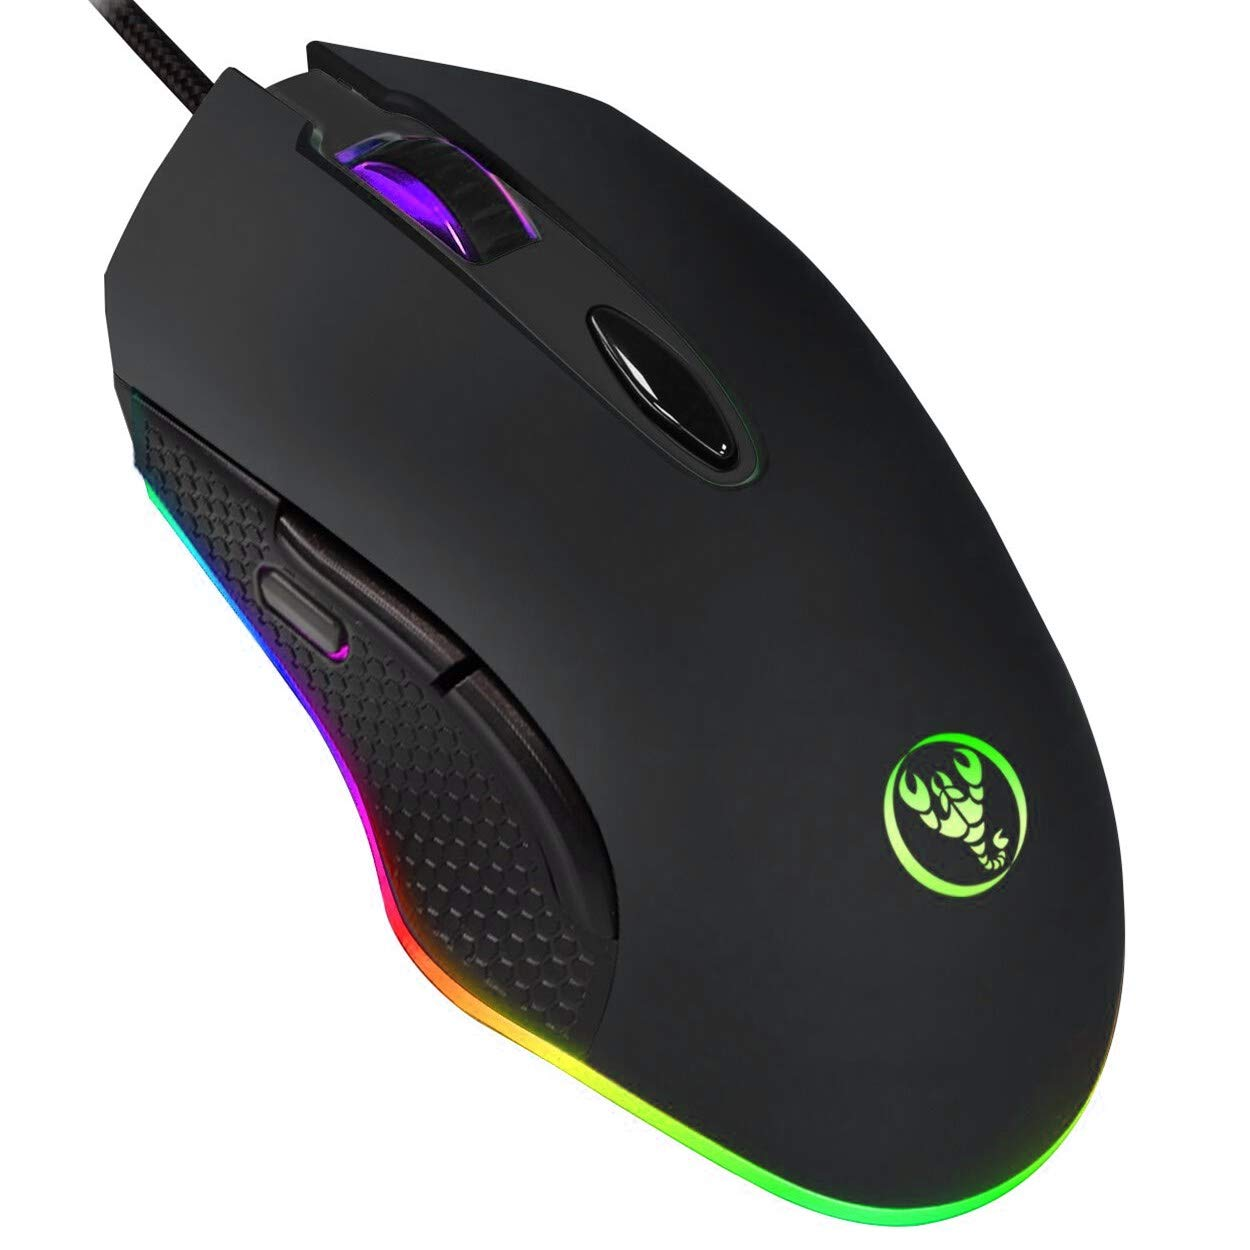 ERUN Gaming Mouse Wired, Chroma RGB Backlit Color 4DPI Adjustable Comfortable Grip Ergonomic Optical PC Computer Mice with Fire Button Mouse Black